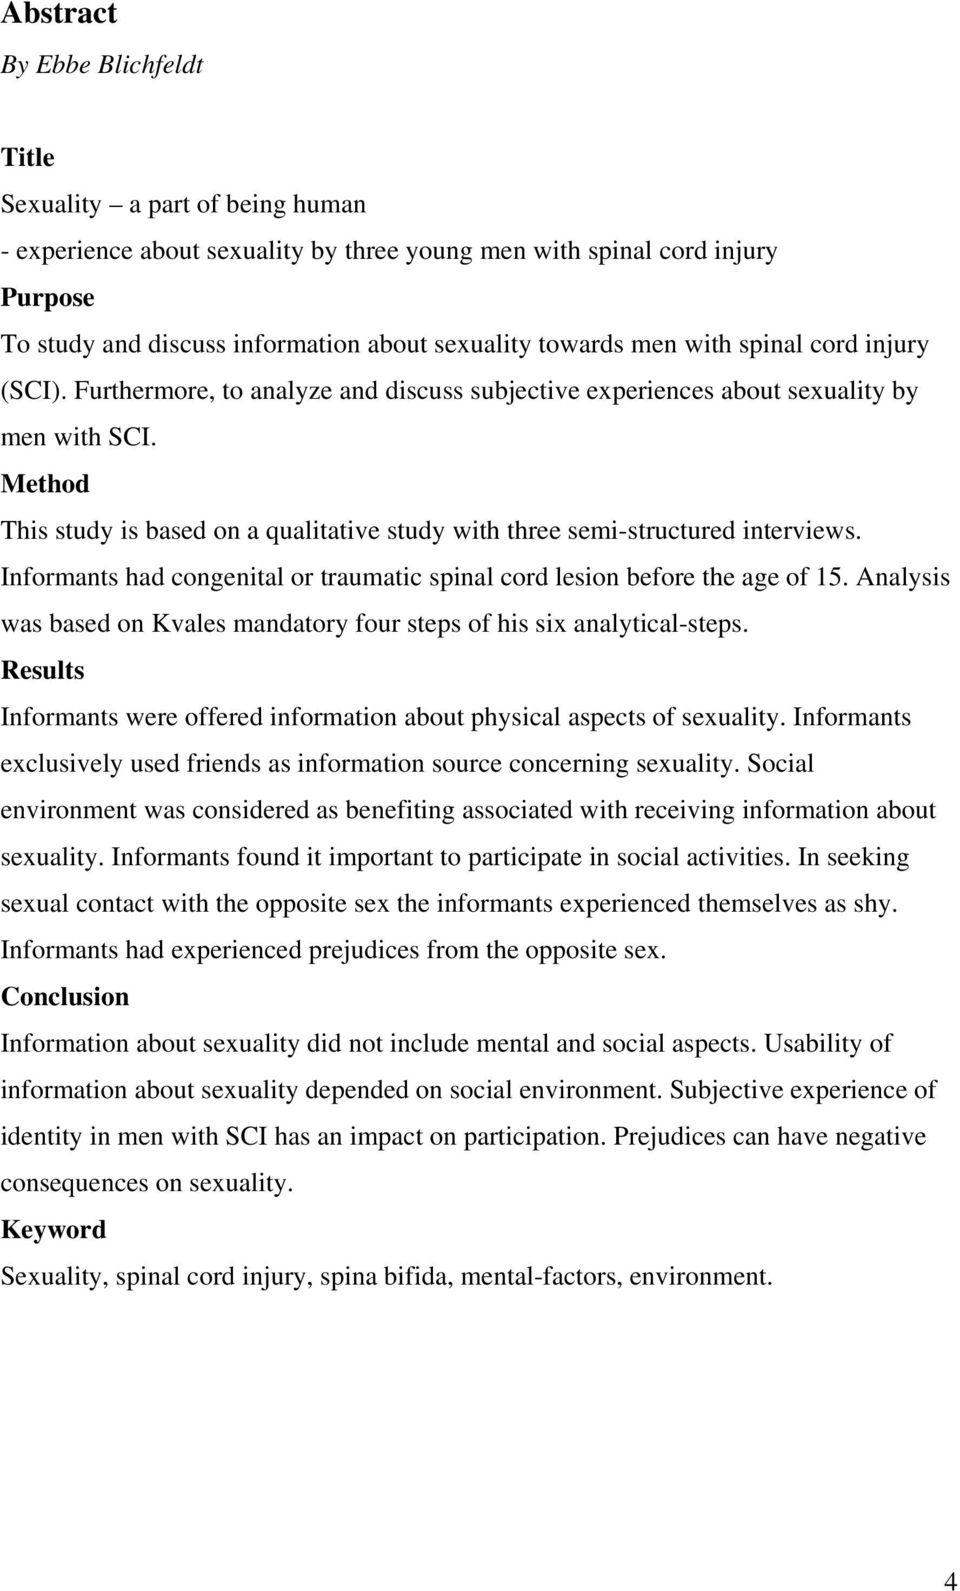 Method This study is based on a qualitative study with three semi-structured interviews. Informants had congenital or traumatic spinal cord lesion before the age of 15.